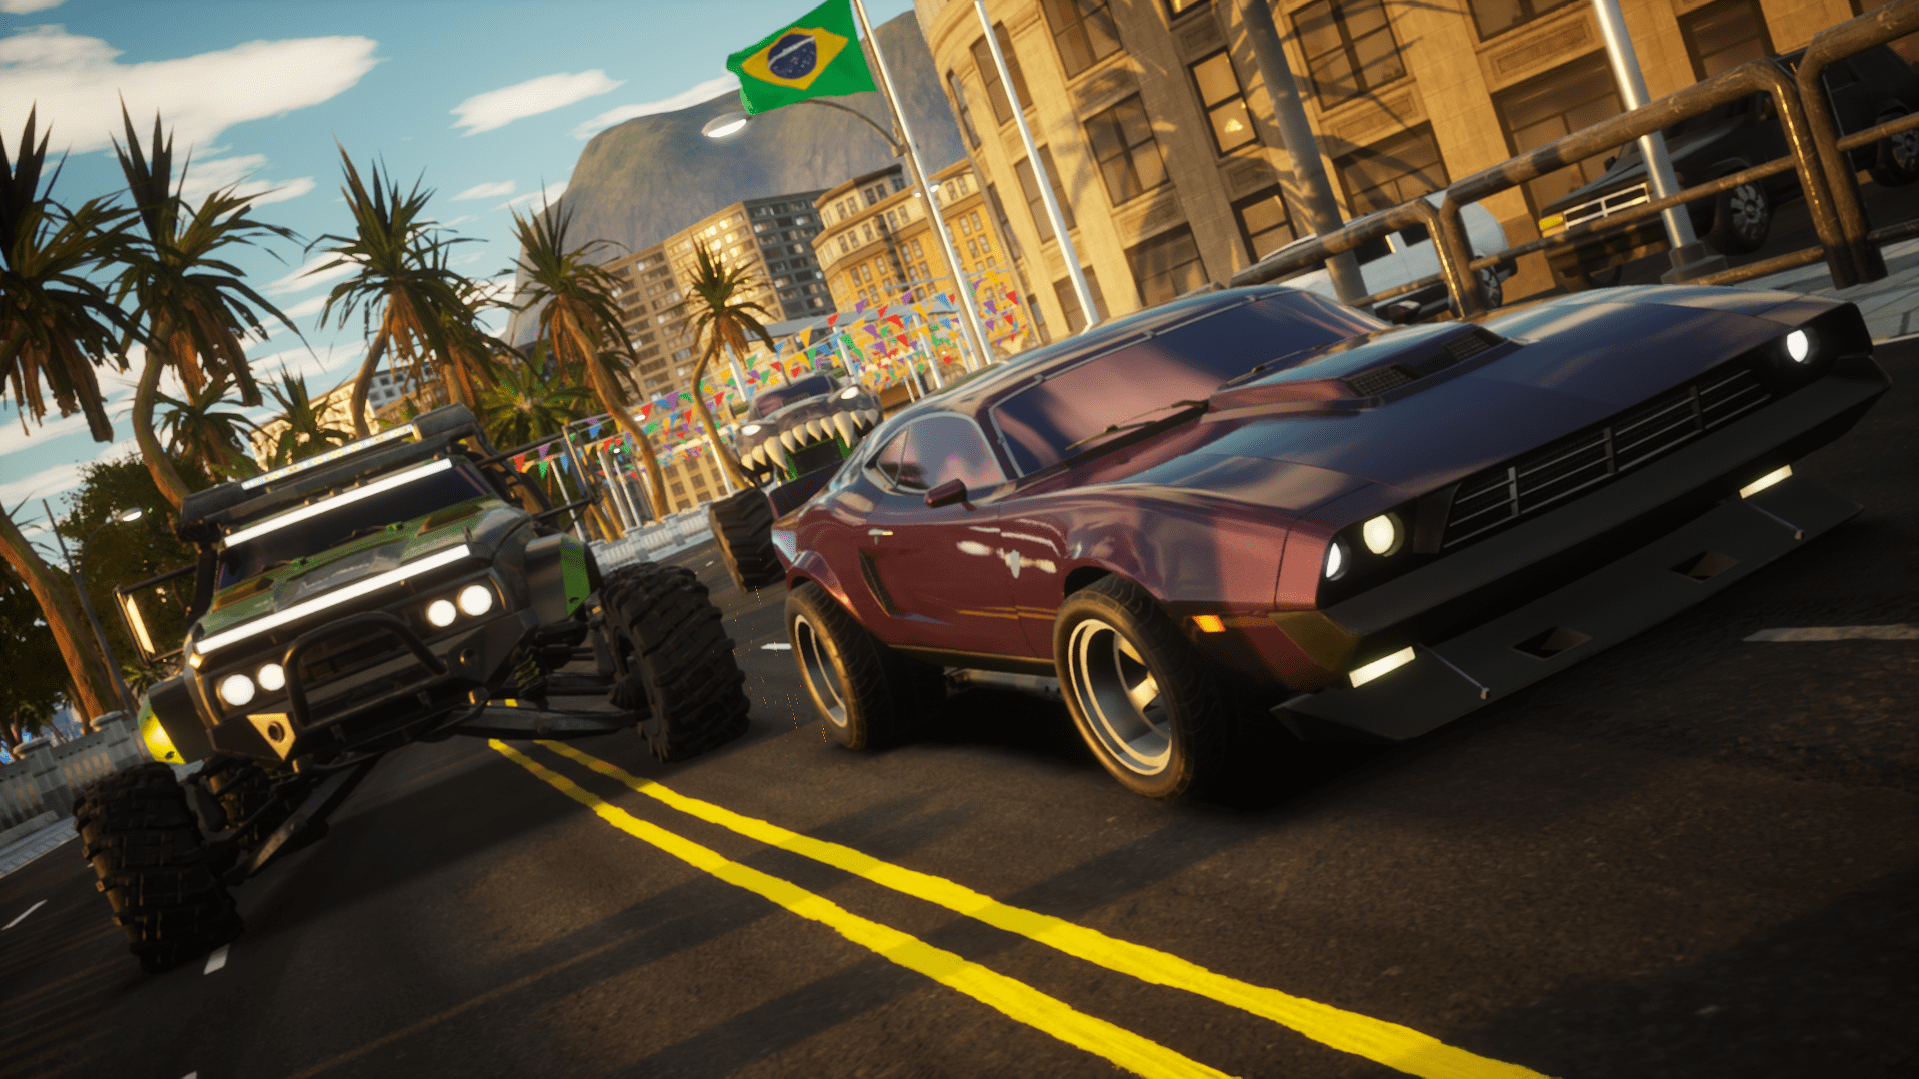 Fast & Furious: Spy Racers: Rise of SH1FT3R Announced